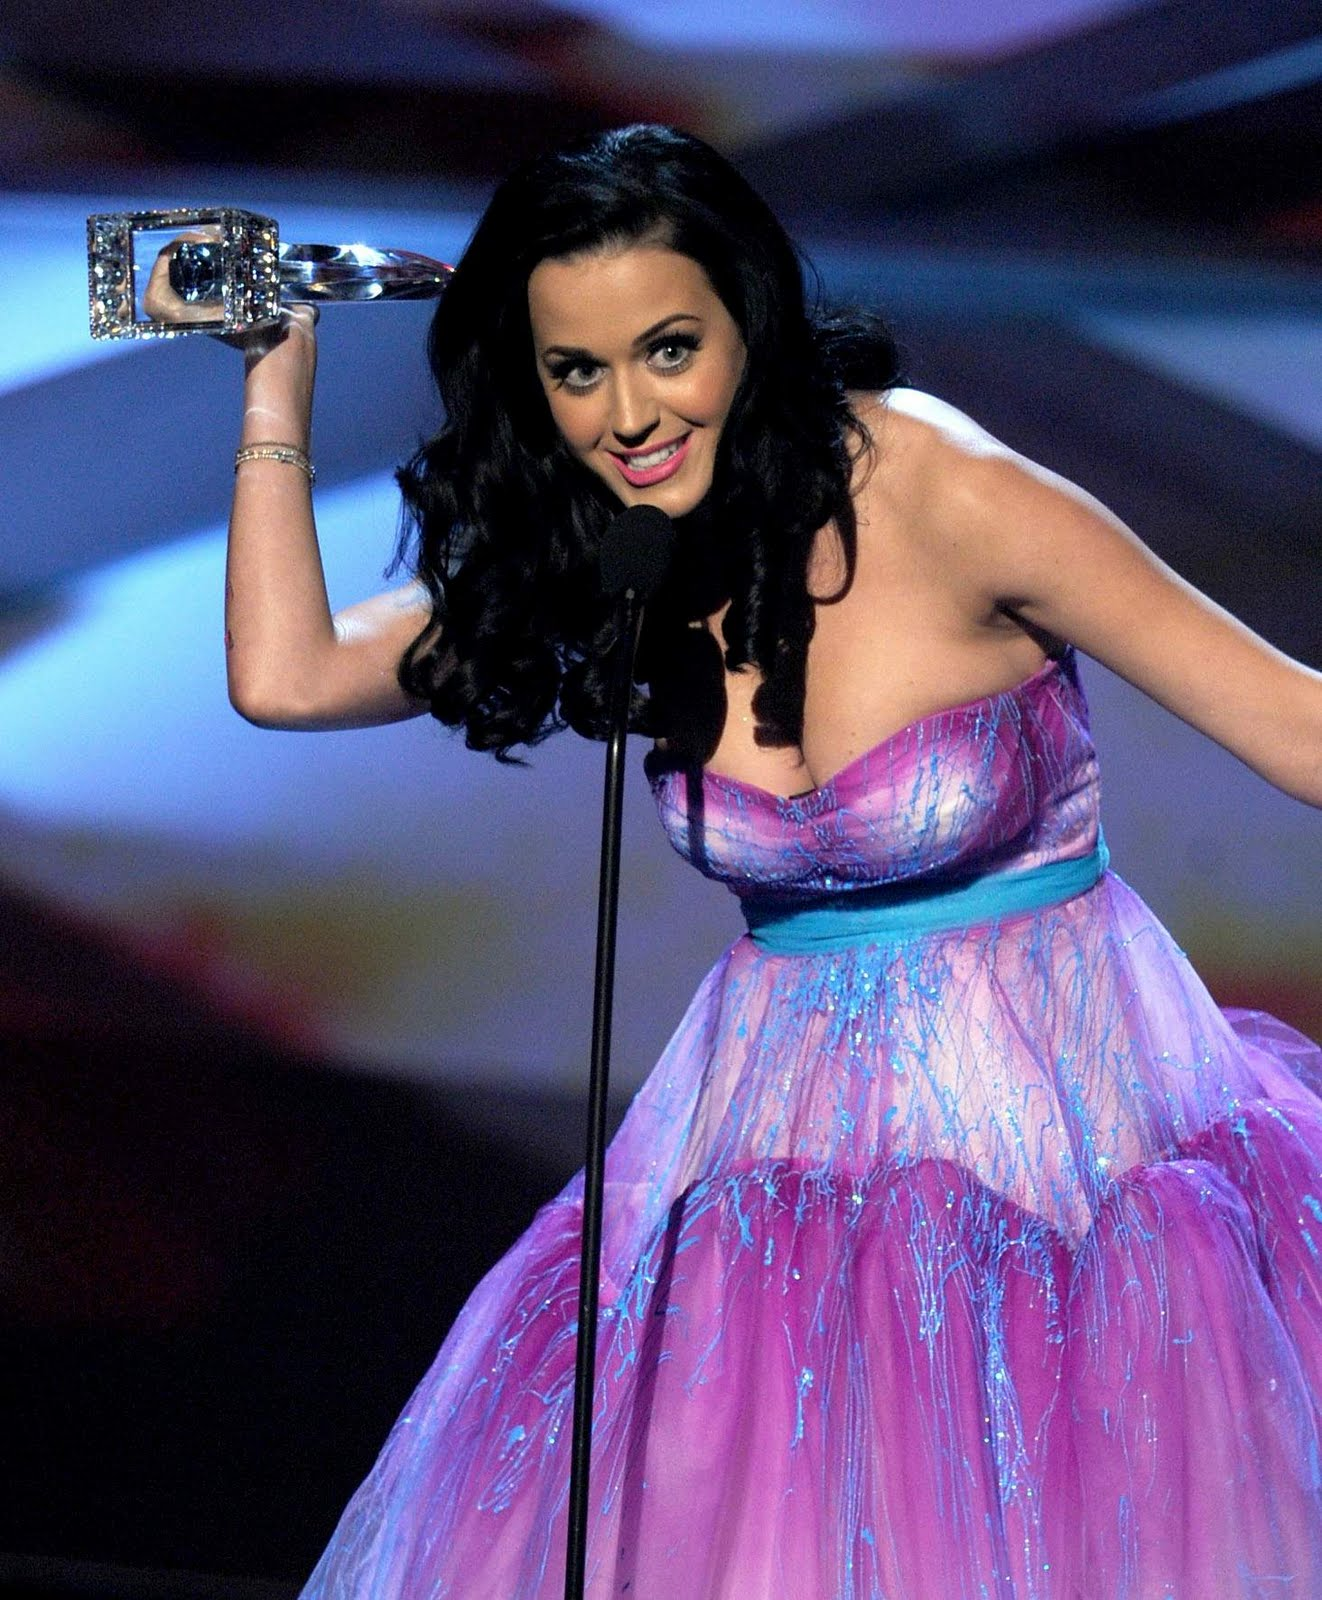 Celebritybuzzus Katy Perry Peoples Choice Awards Breast -6489